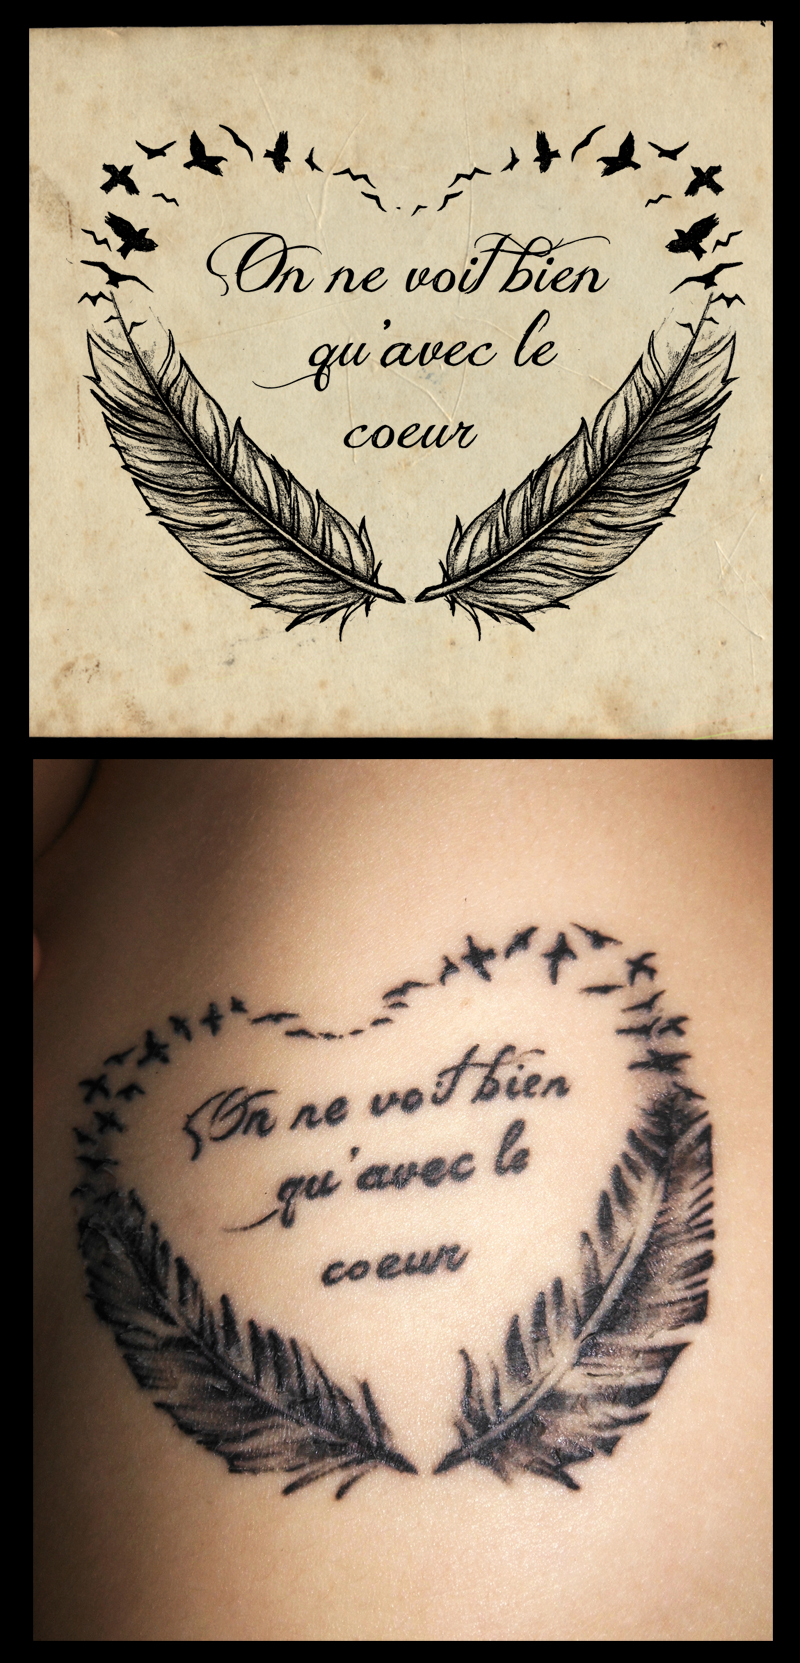 the little prince quote tattoo by whitesylver on deviantart. Black Bedroom Furniture Sets. Home Design Ideas